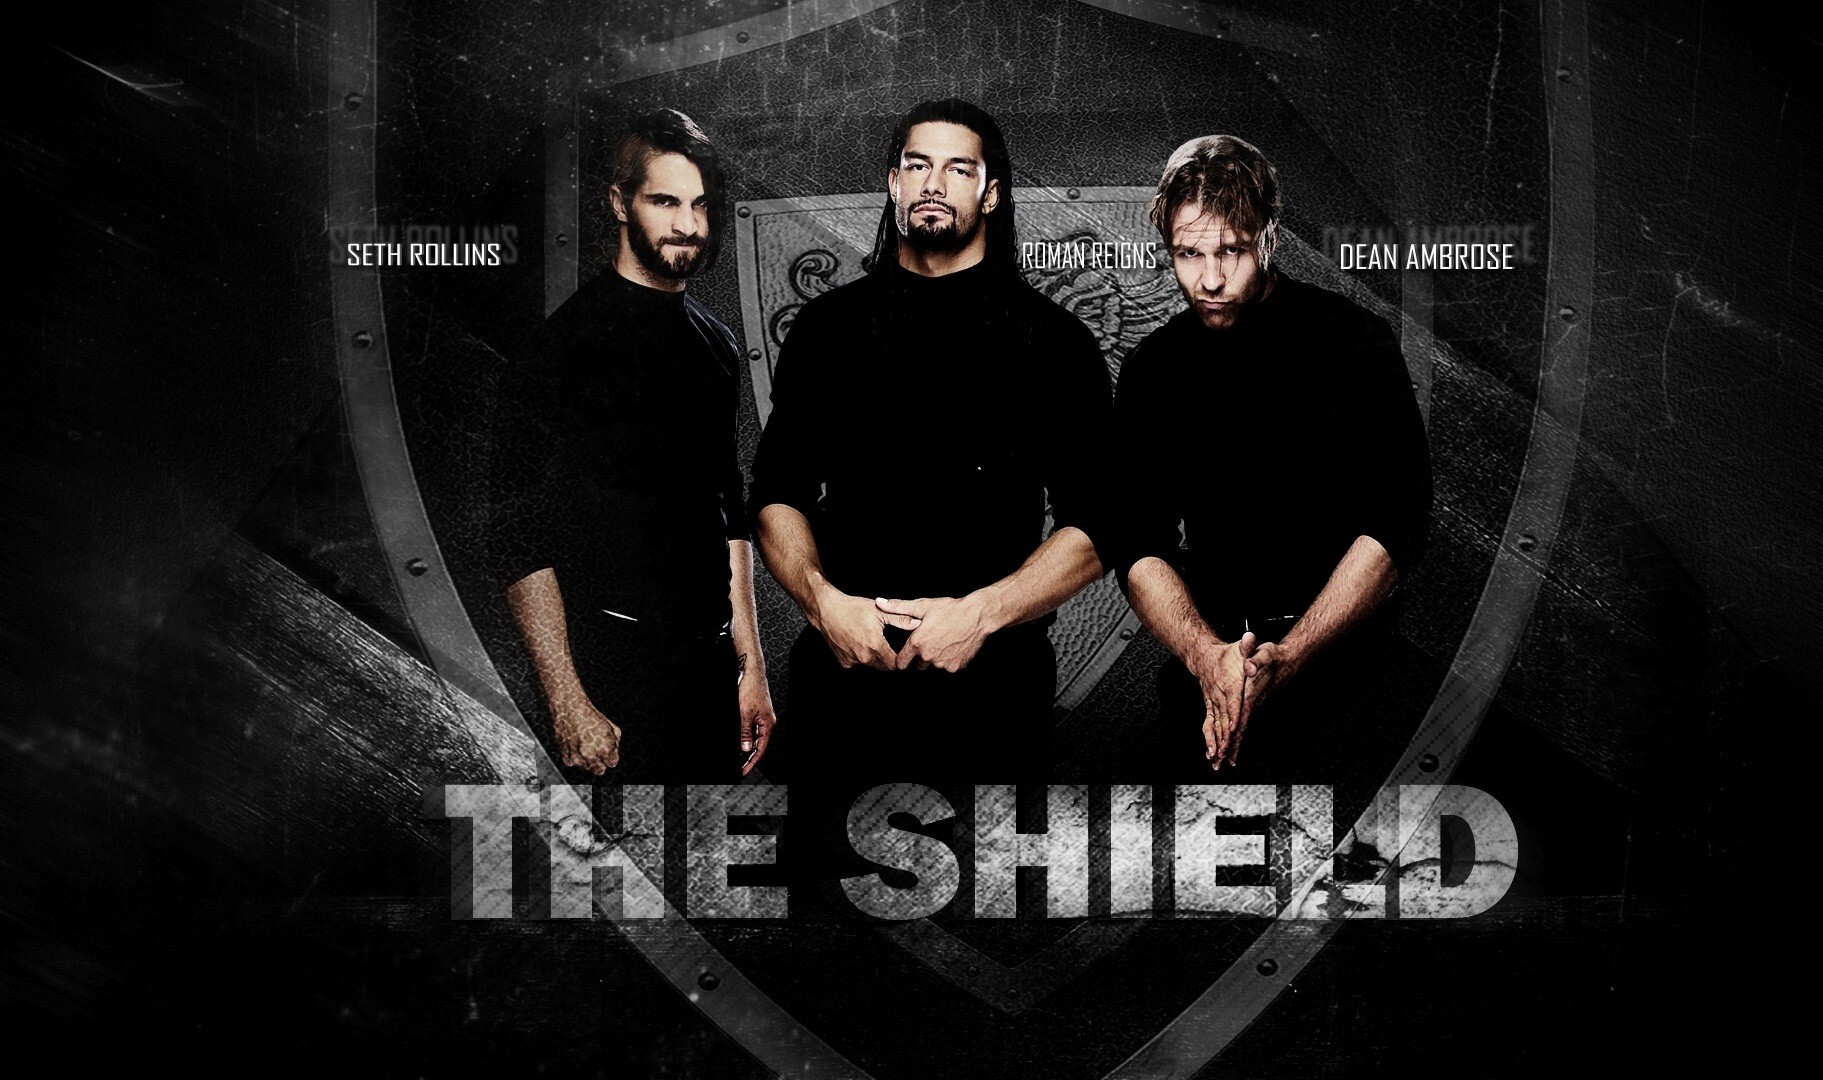 Wwe the shield hd wallpapers - Download pictures of the shield wwe ...